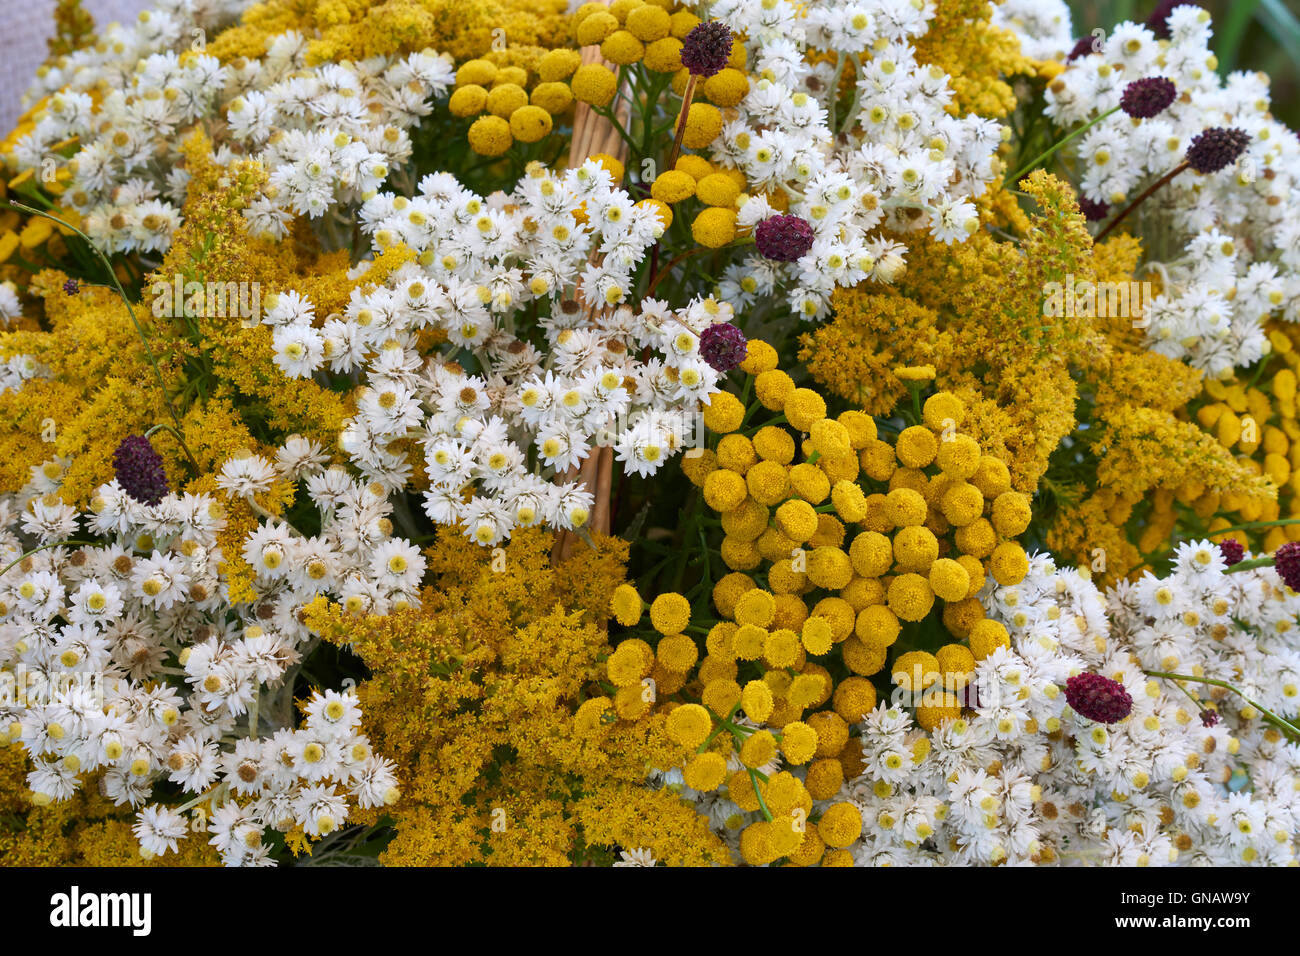 Beautiful Flower Arrangement With Small White And Yellow Flowers